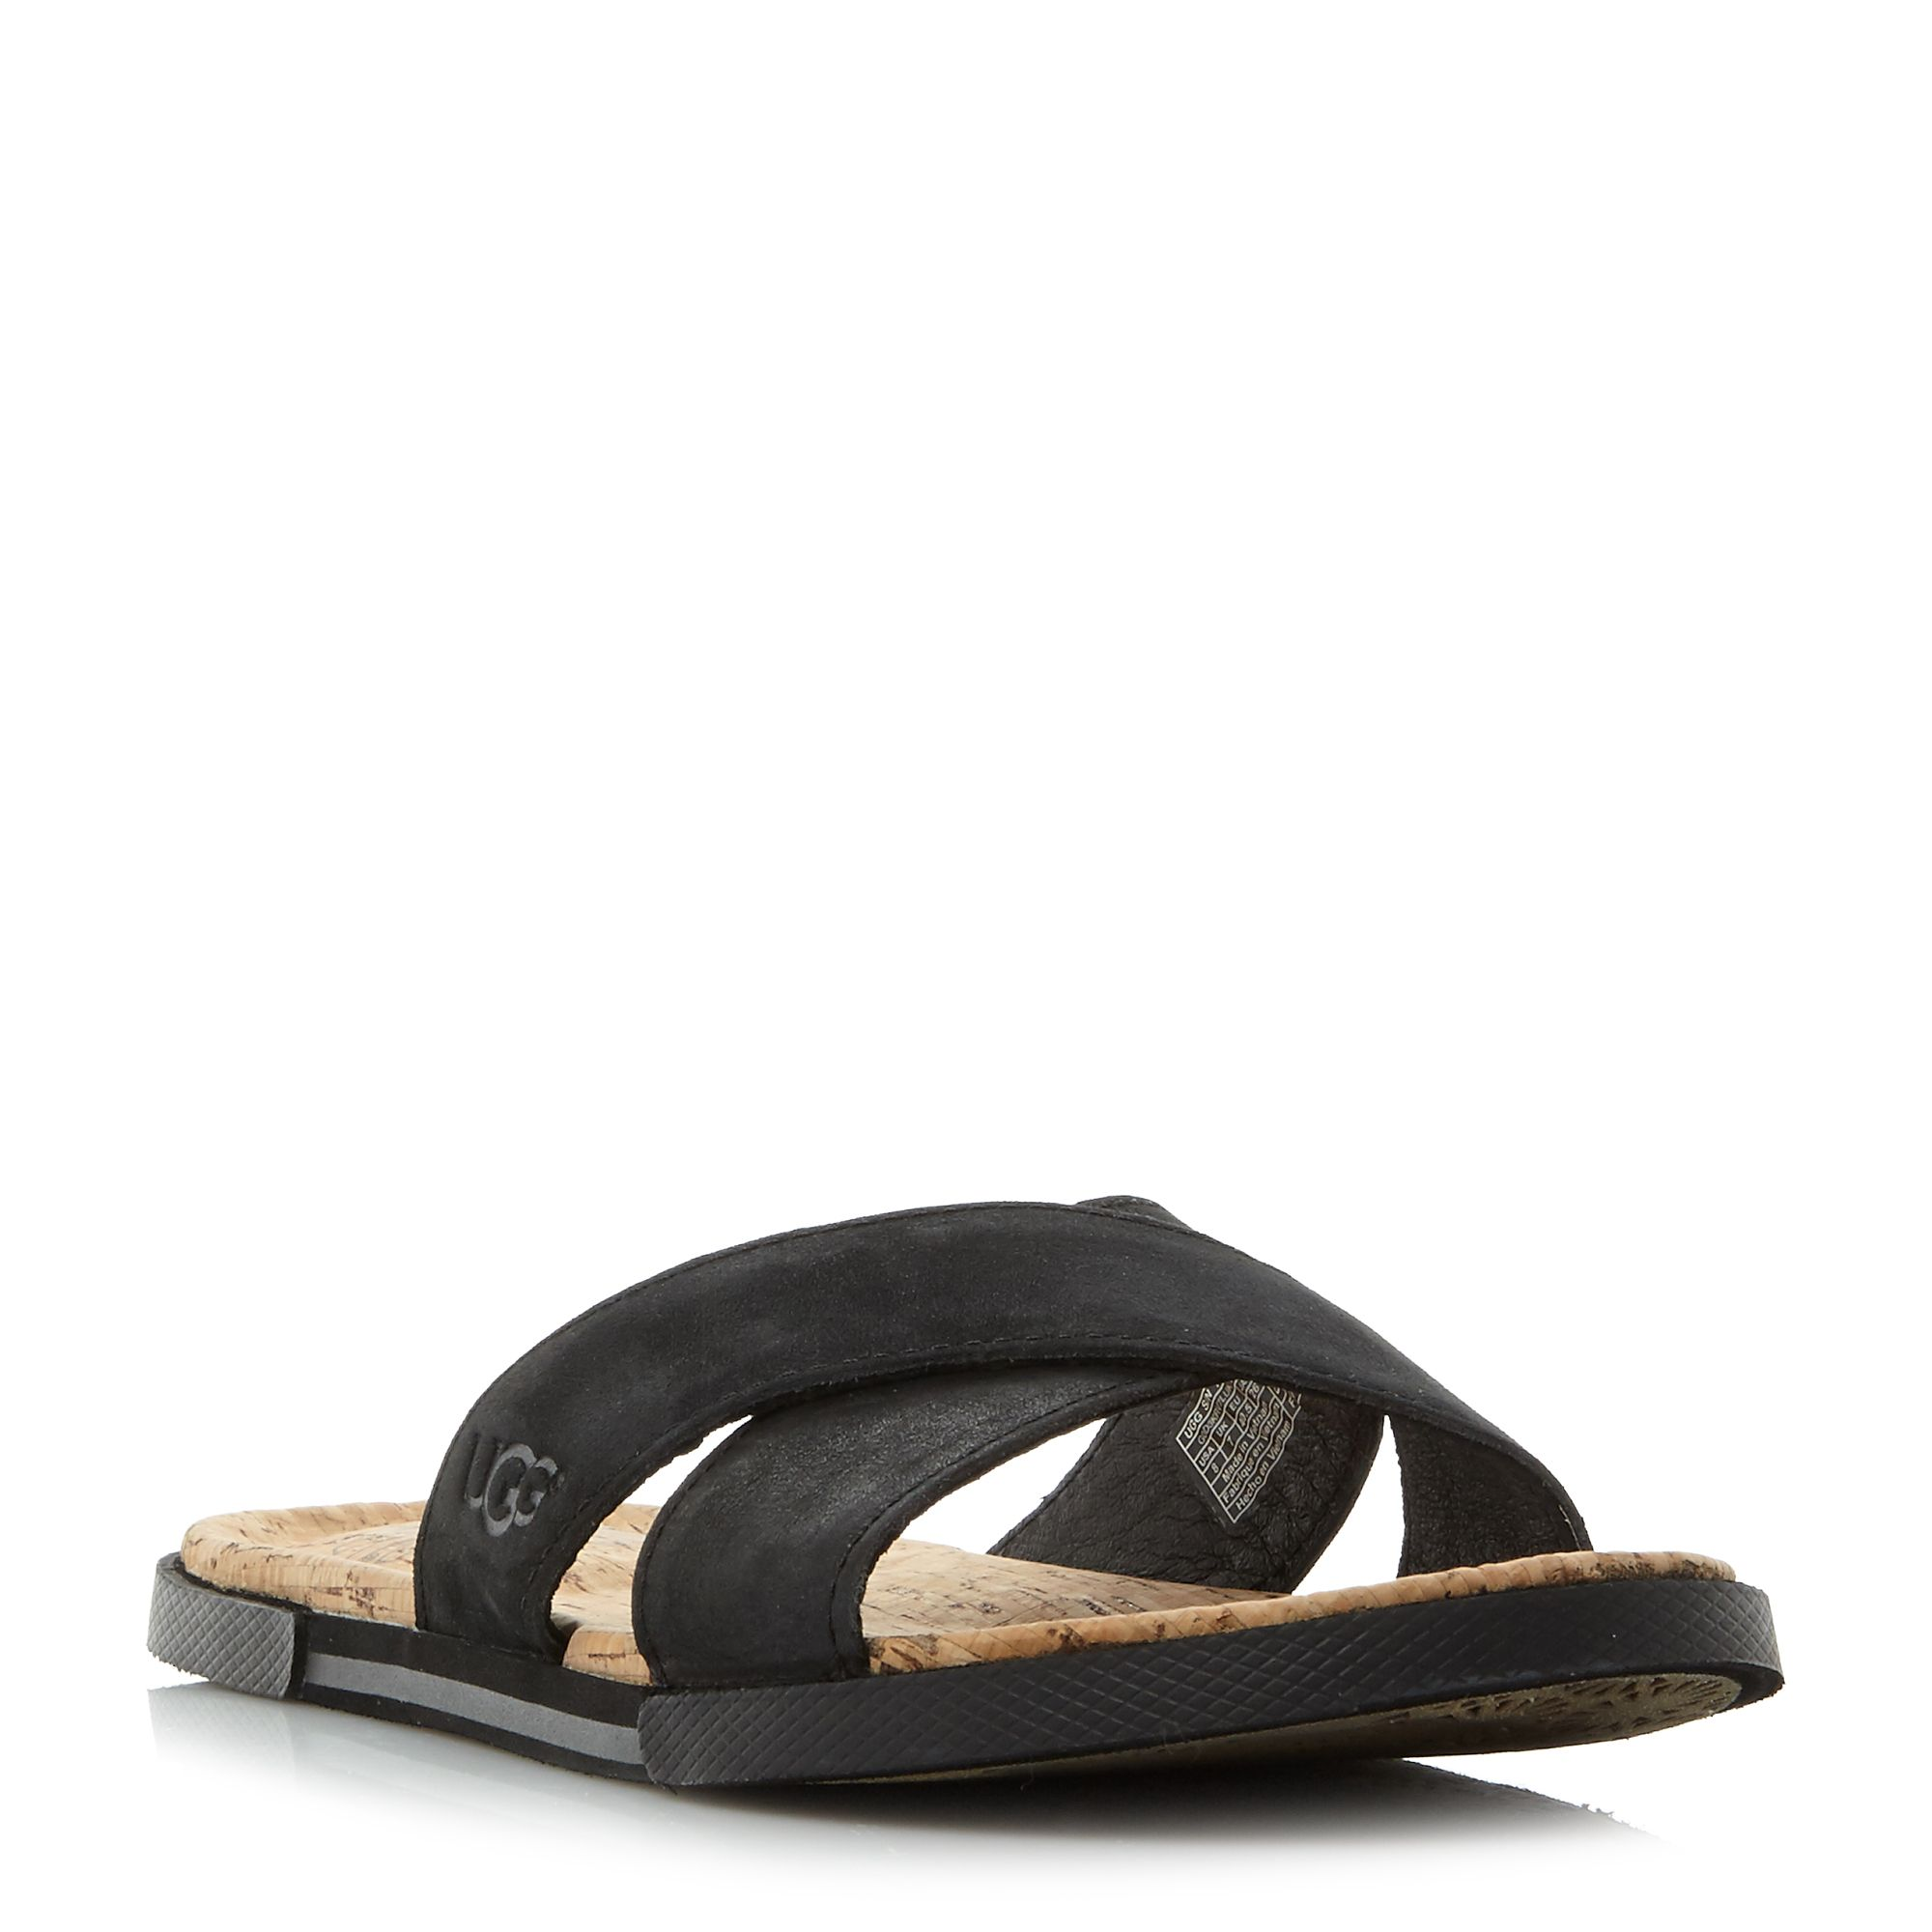 Black sandals house of fraser